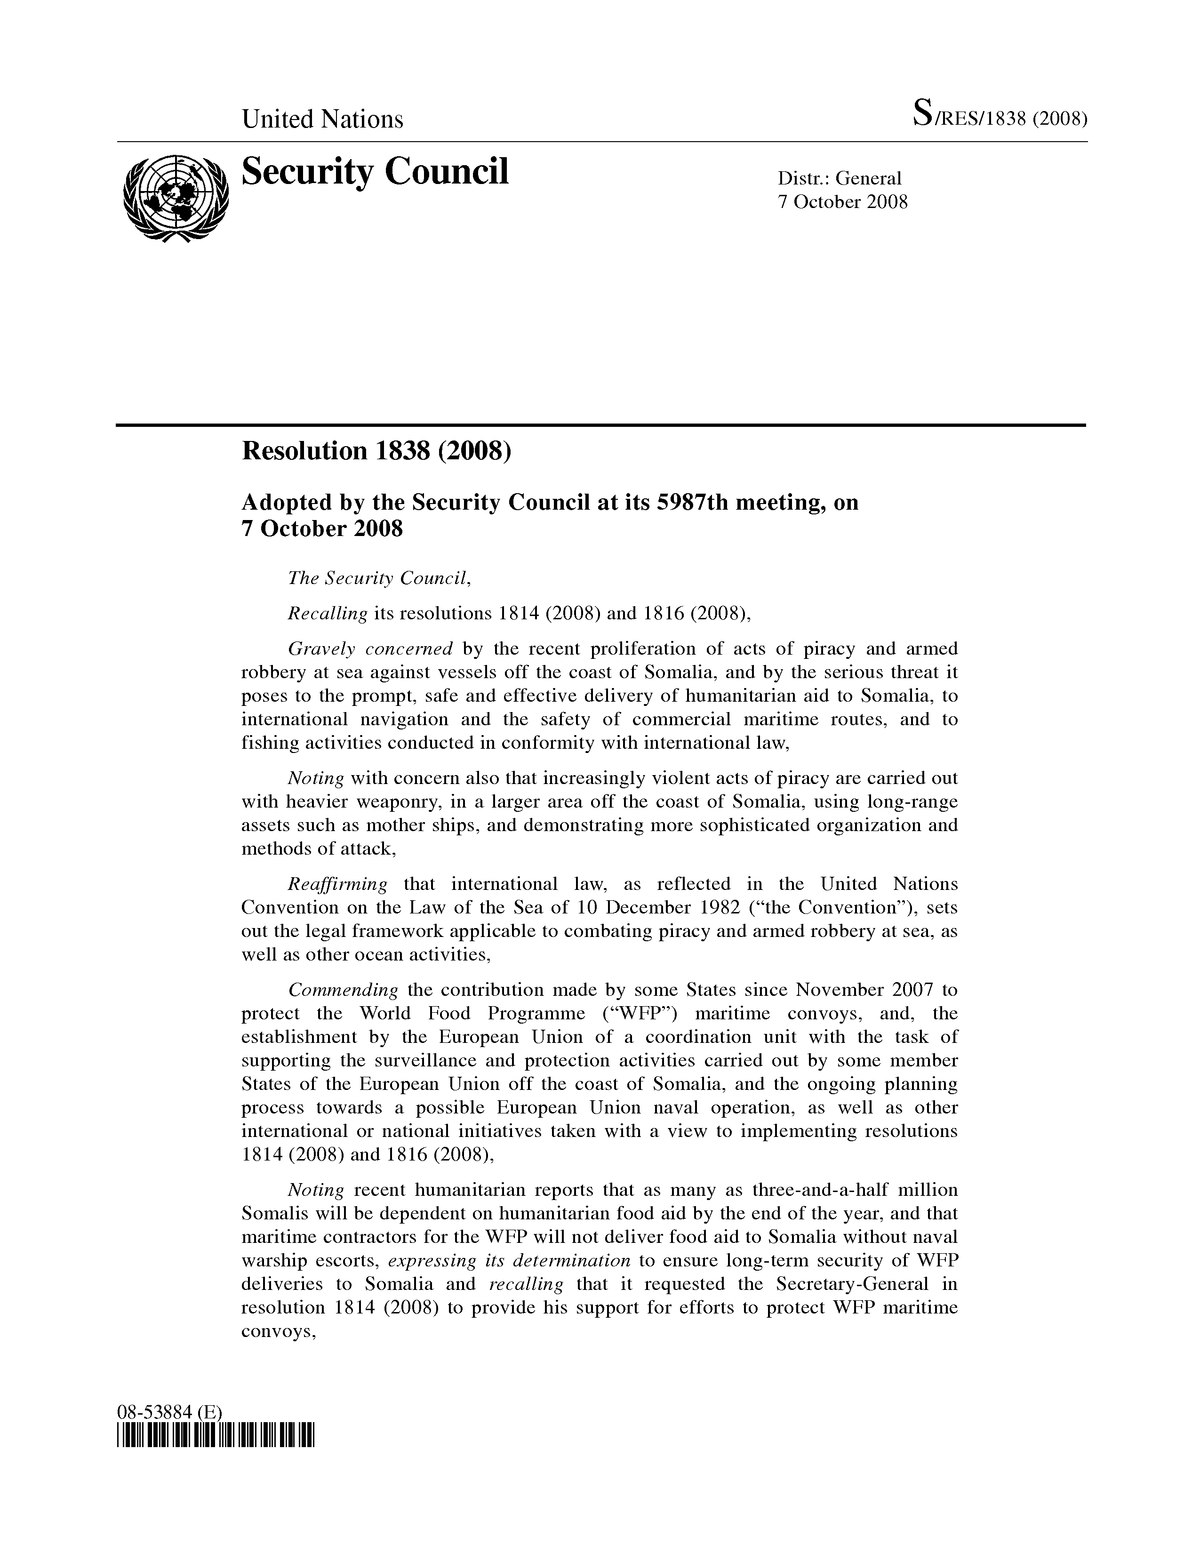 United Nations Security Council Resolution